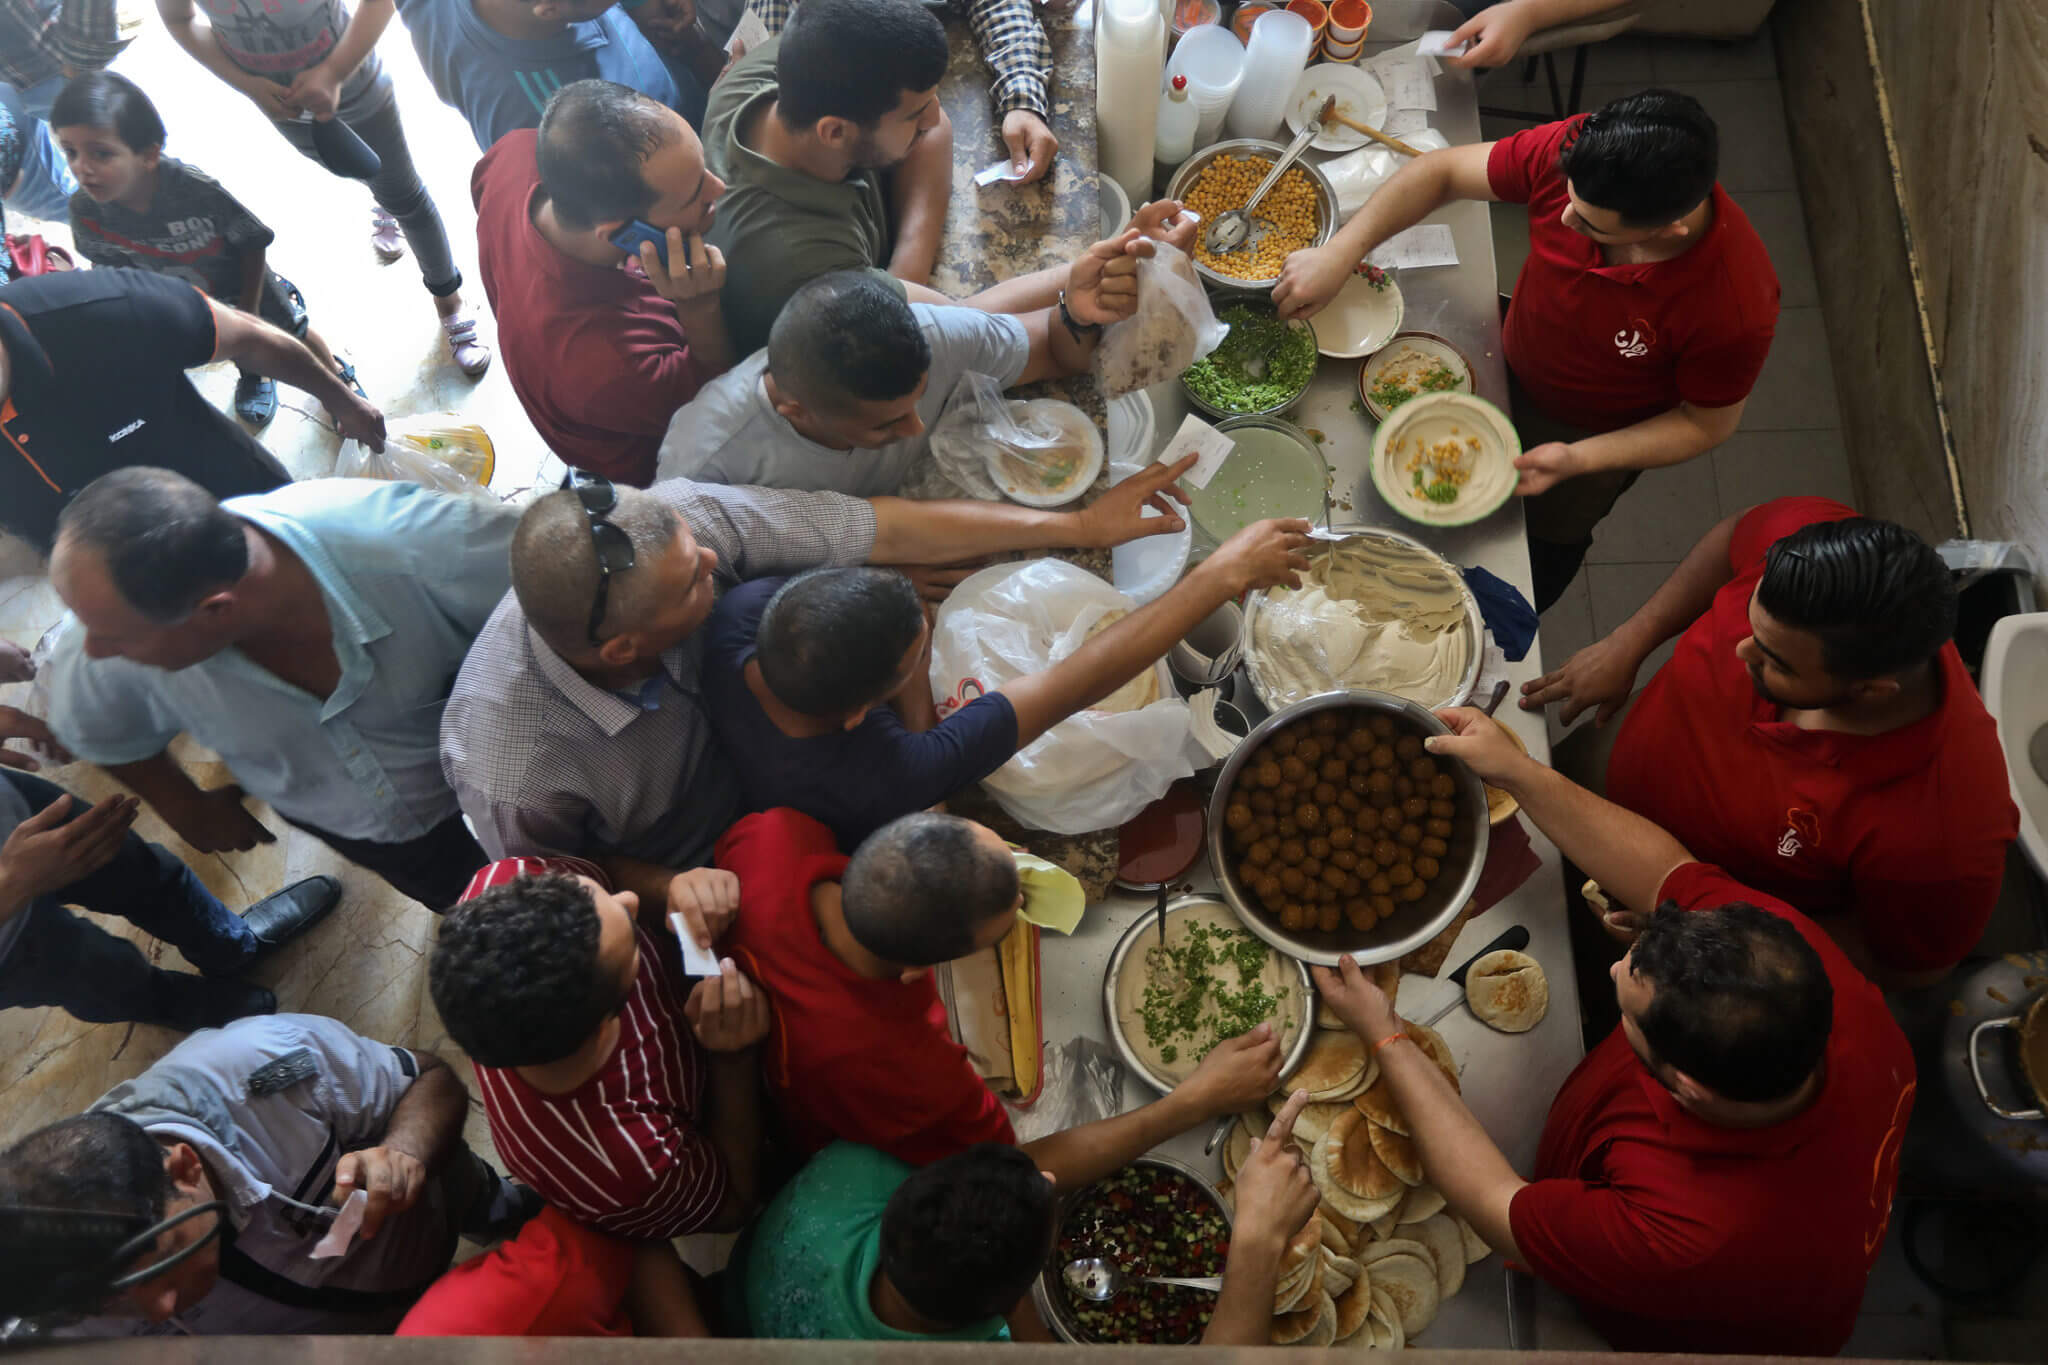 Diners crowd a traditional restaurant to buy falafel, hummus, and mutabbal.